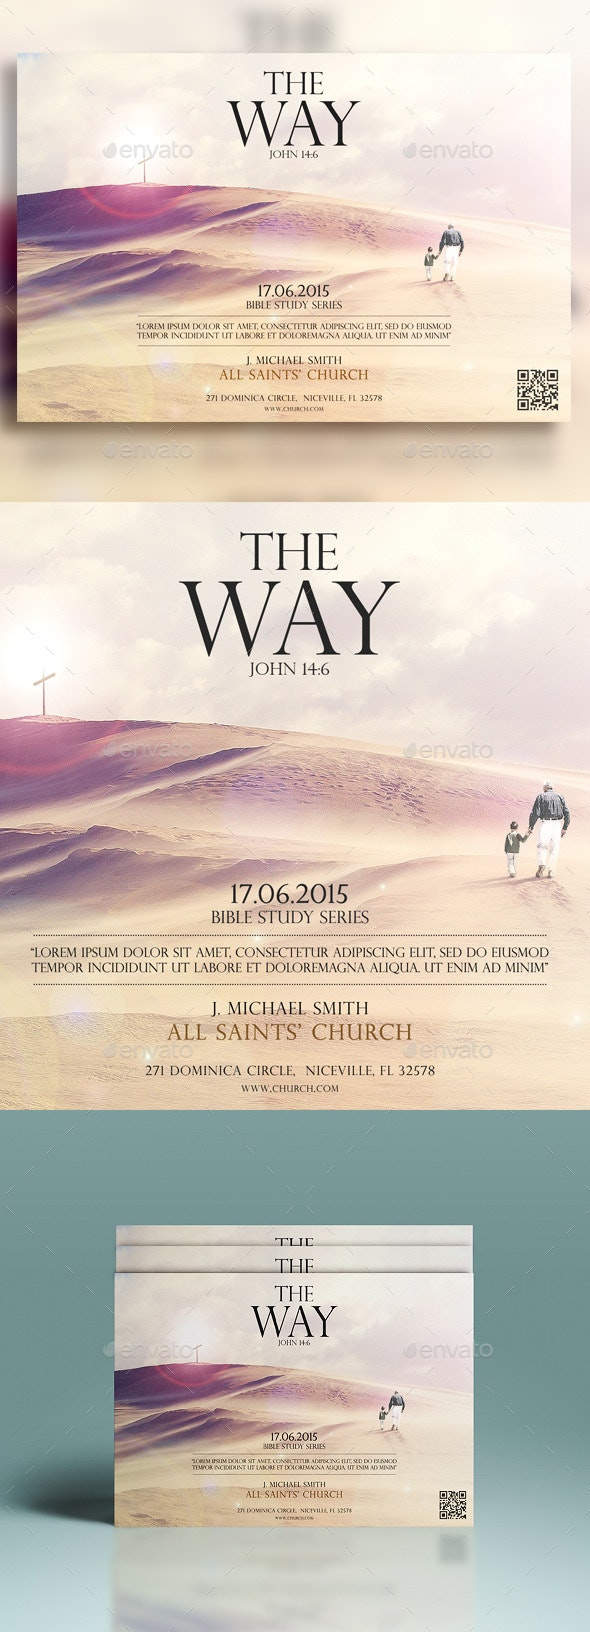 The Way Of The Spirit - Church Flyers